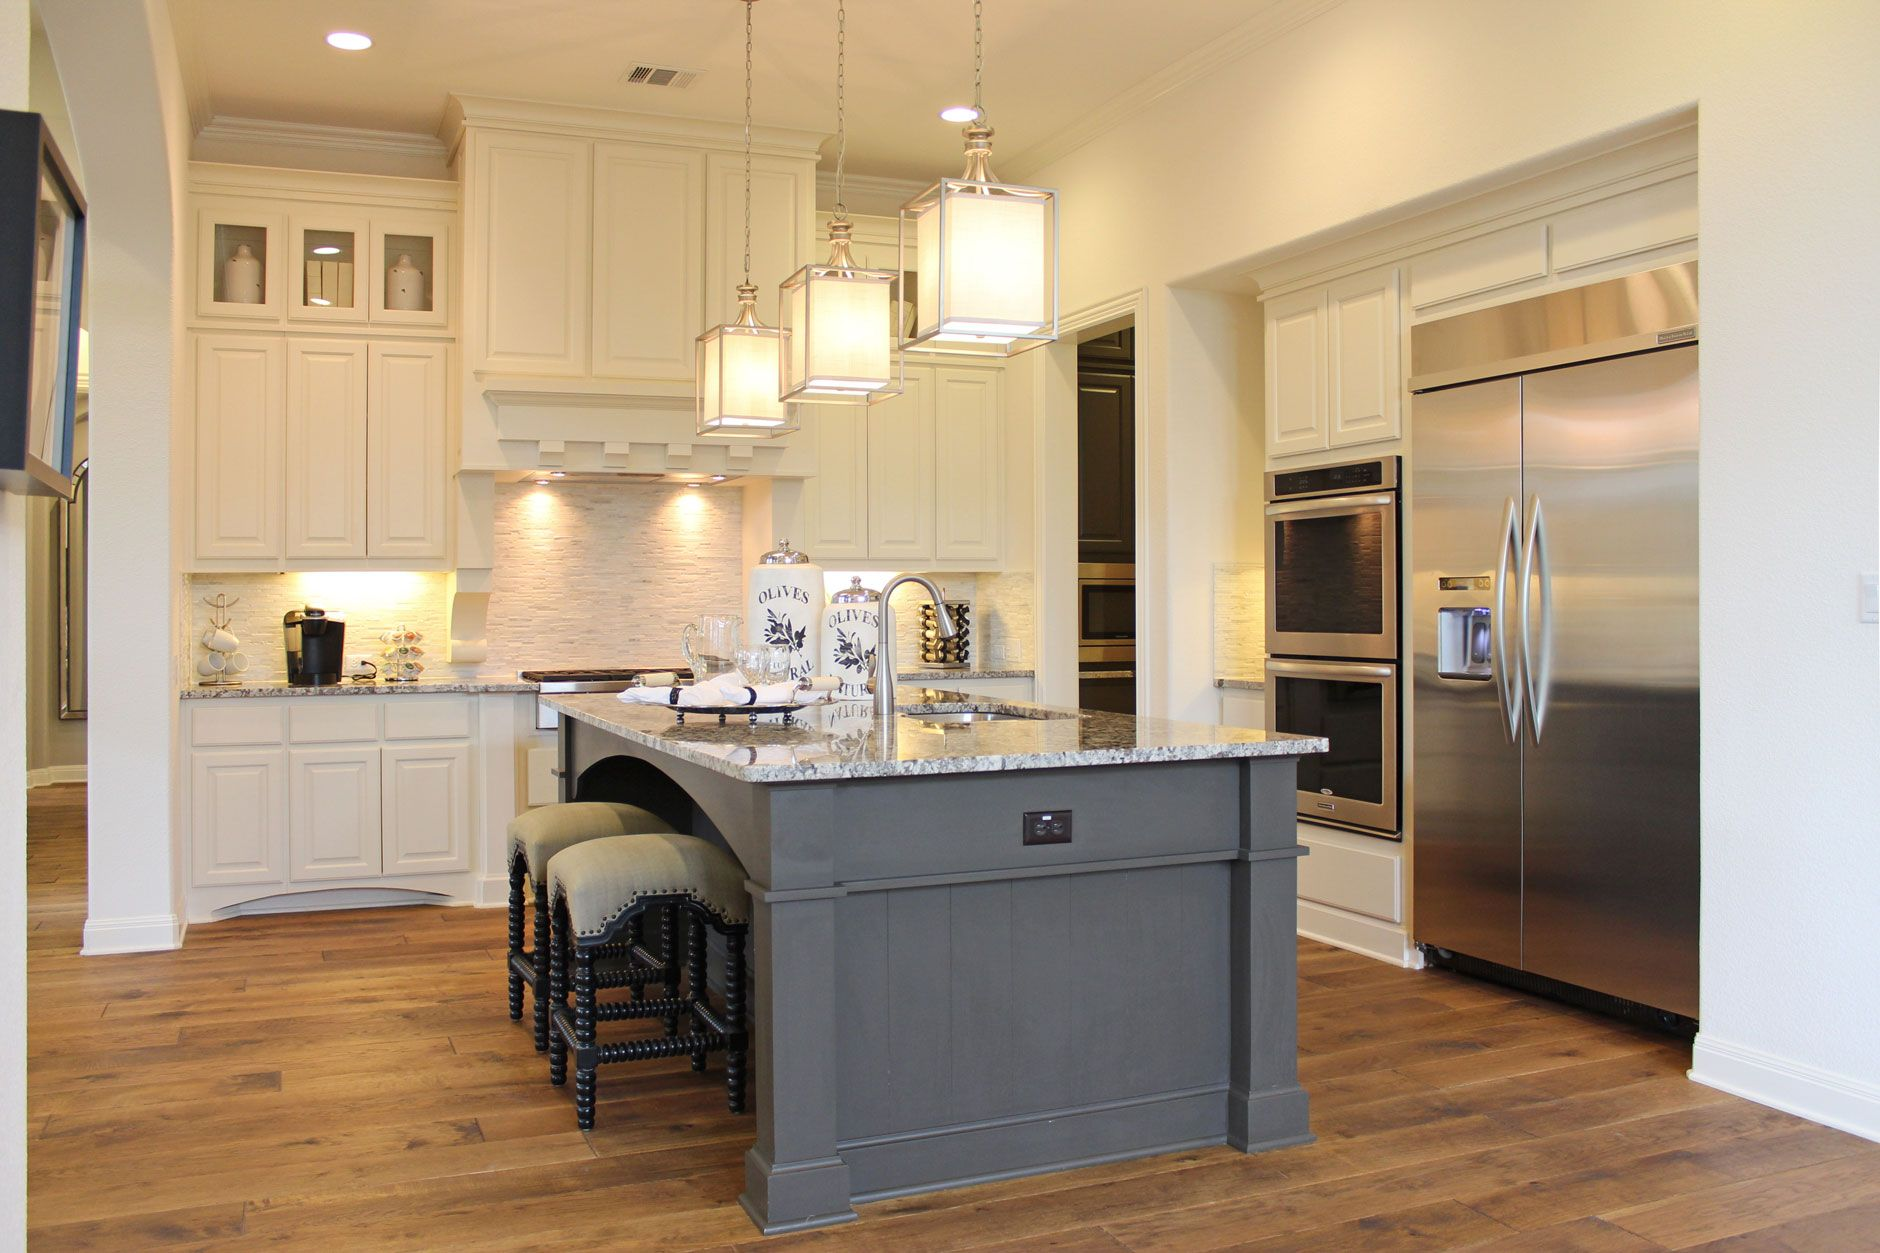 burrows cabinets kitchen cabinets in bone white and gray island with glass door panels in on kitchen cabinets with glass doors on top id=99382